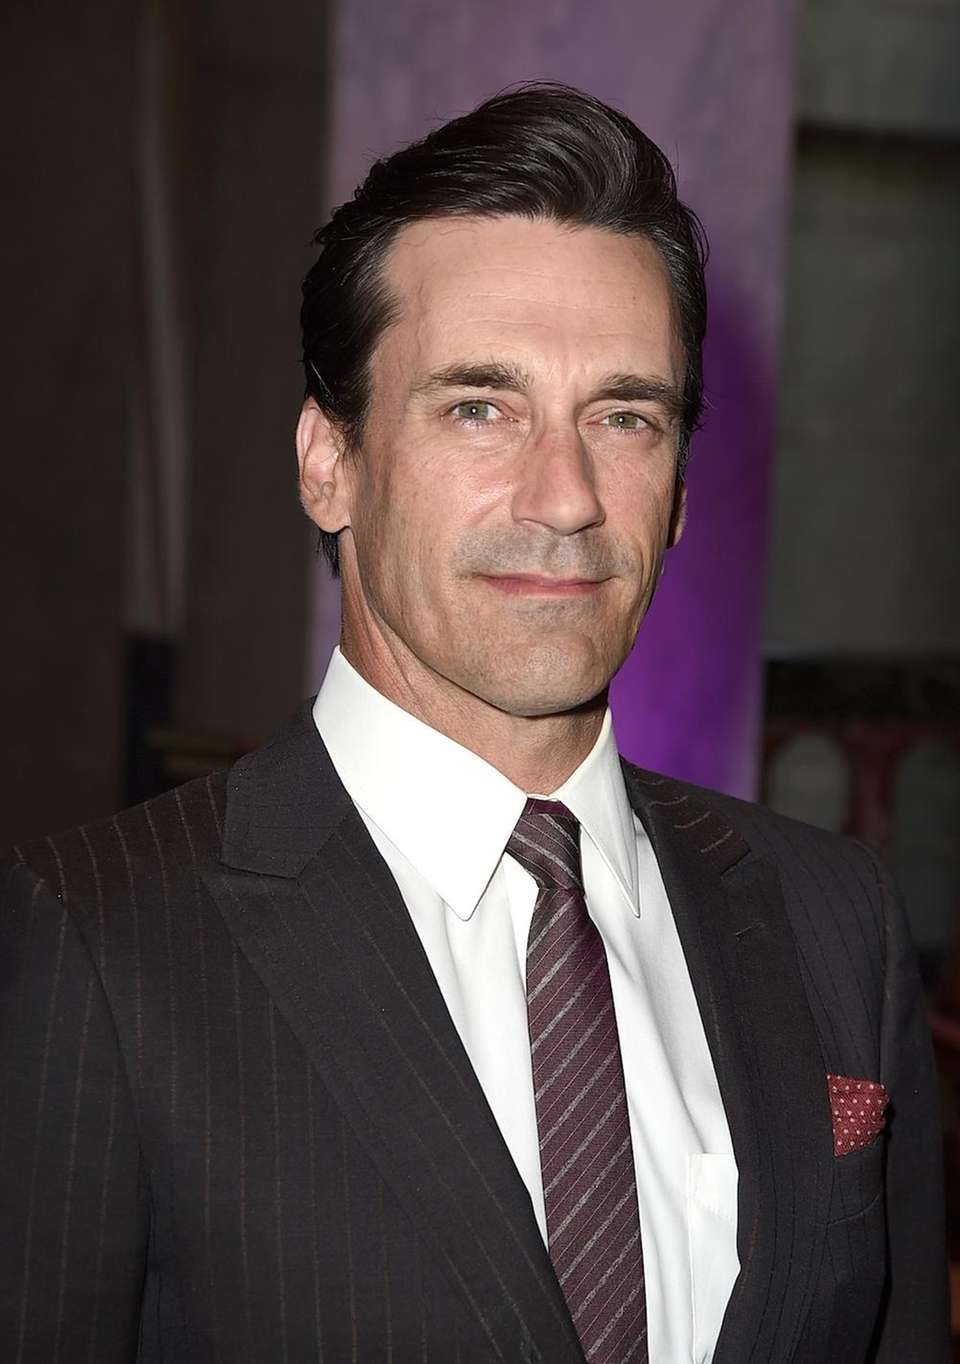 Jon Hamm has rarely spoken about his stint